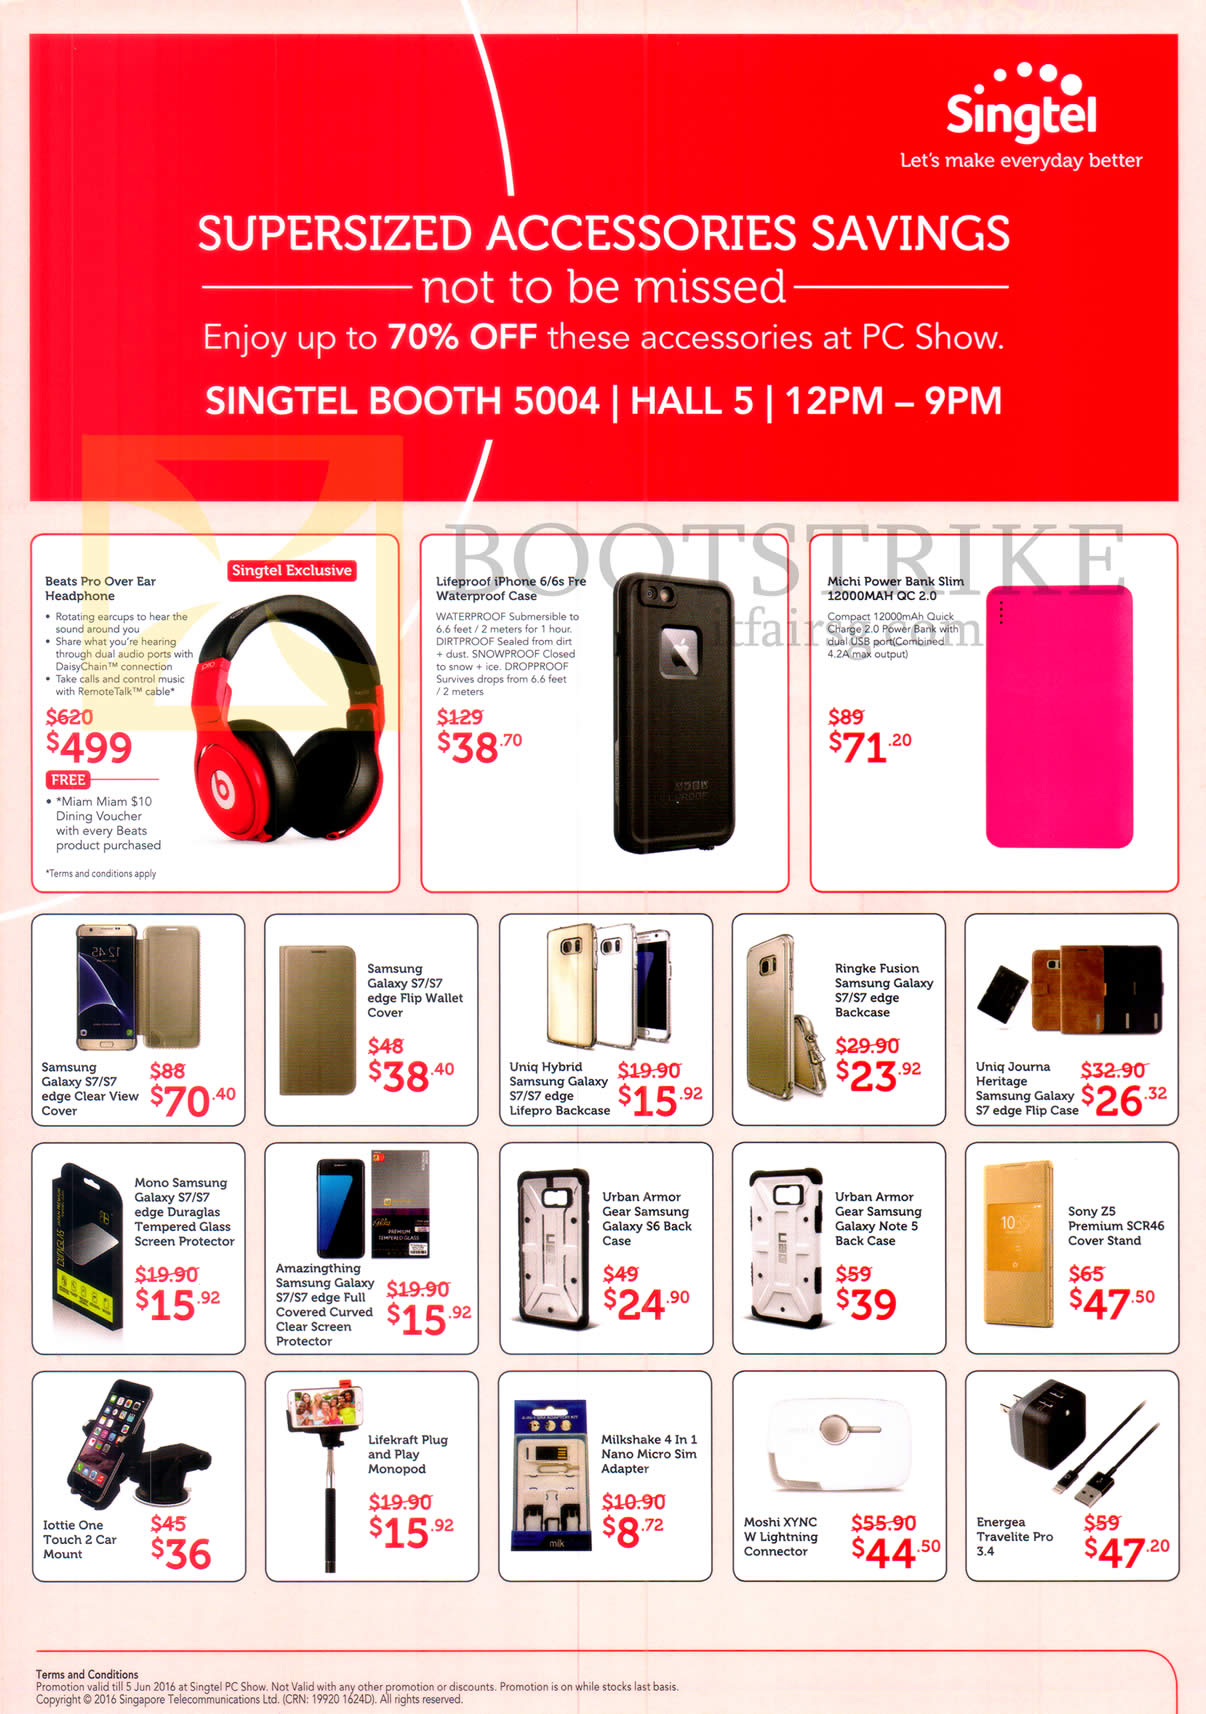 PC SHOW 2016 price list image brochure of Singtel Mobile Phone Accessories Beats Pro Over Ear, Lifgeprood, Michi Powerbank, Clear View Cover, Back Case, Flip Case, Screen Protector, Sim Adapter